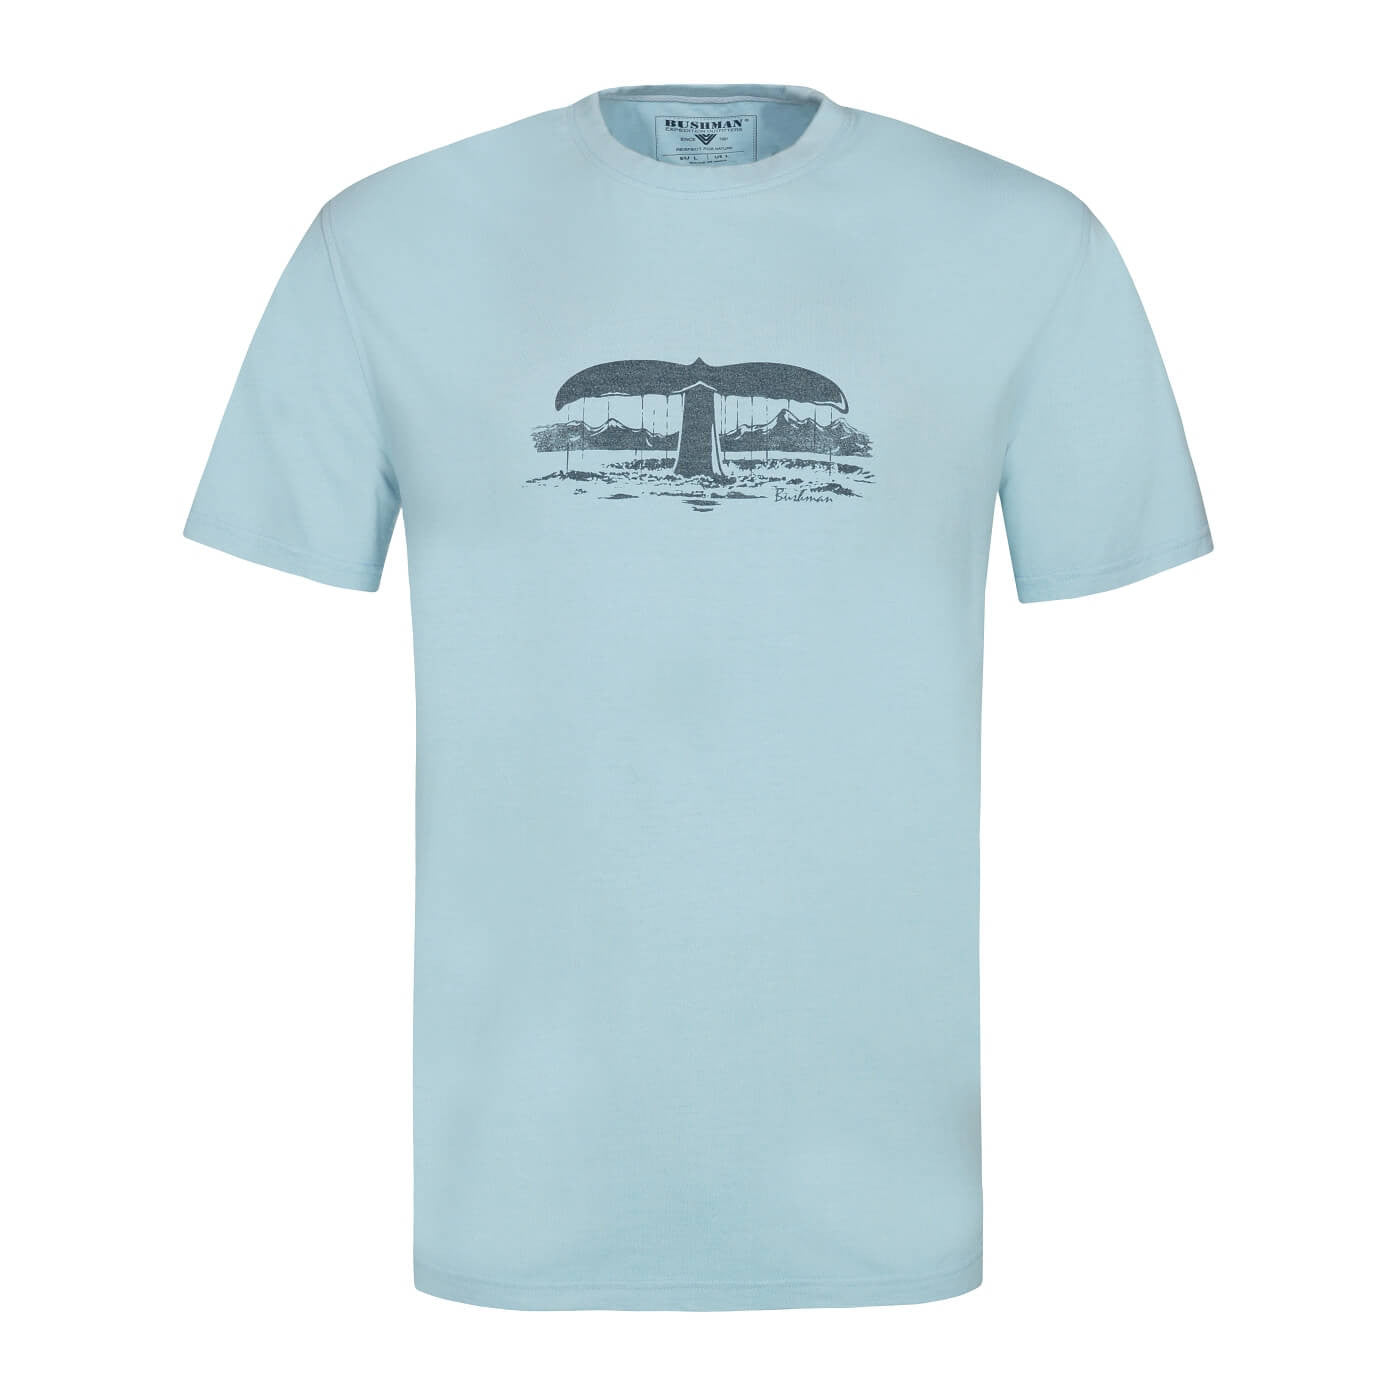 BUSHMANSHOP STERRETT MEN'S LIGHT BLUE COTTON BAMBOO WHALE SHORT SLEEVE T-SHIRT